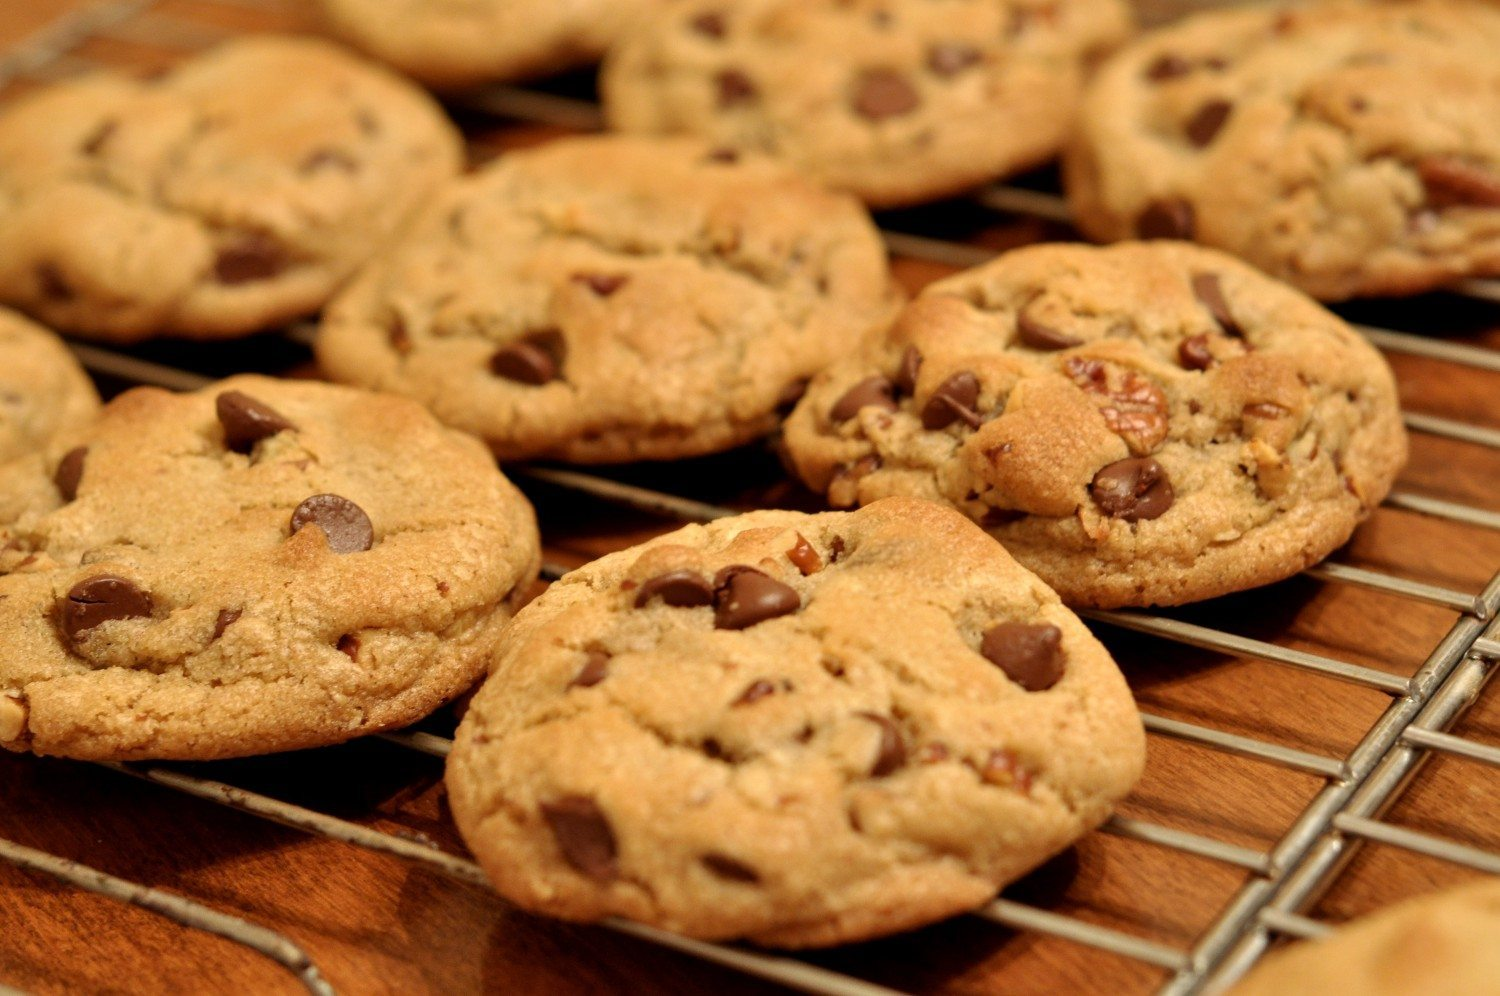 Mario Batali Foundation Honors Gretchen Witt of Cookies for Kids Cancer